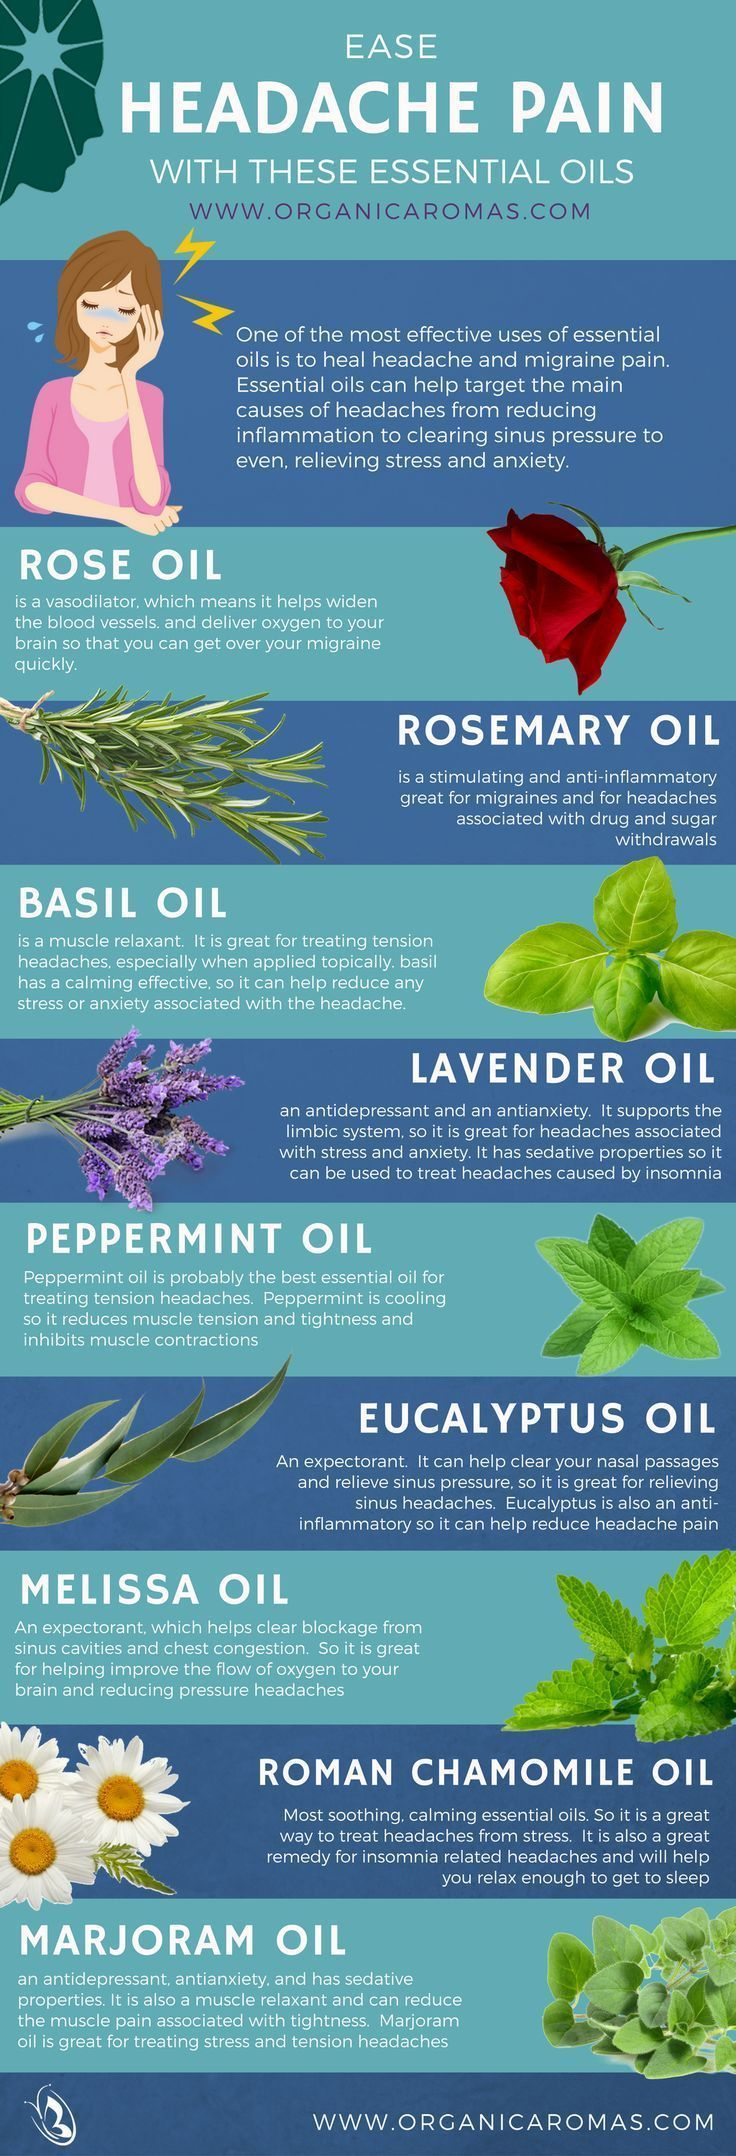 One of the most effective uses of essential oils is to heal headache and migraine pain. Essential oils can help target the main causes of headaches from reduci